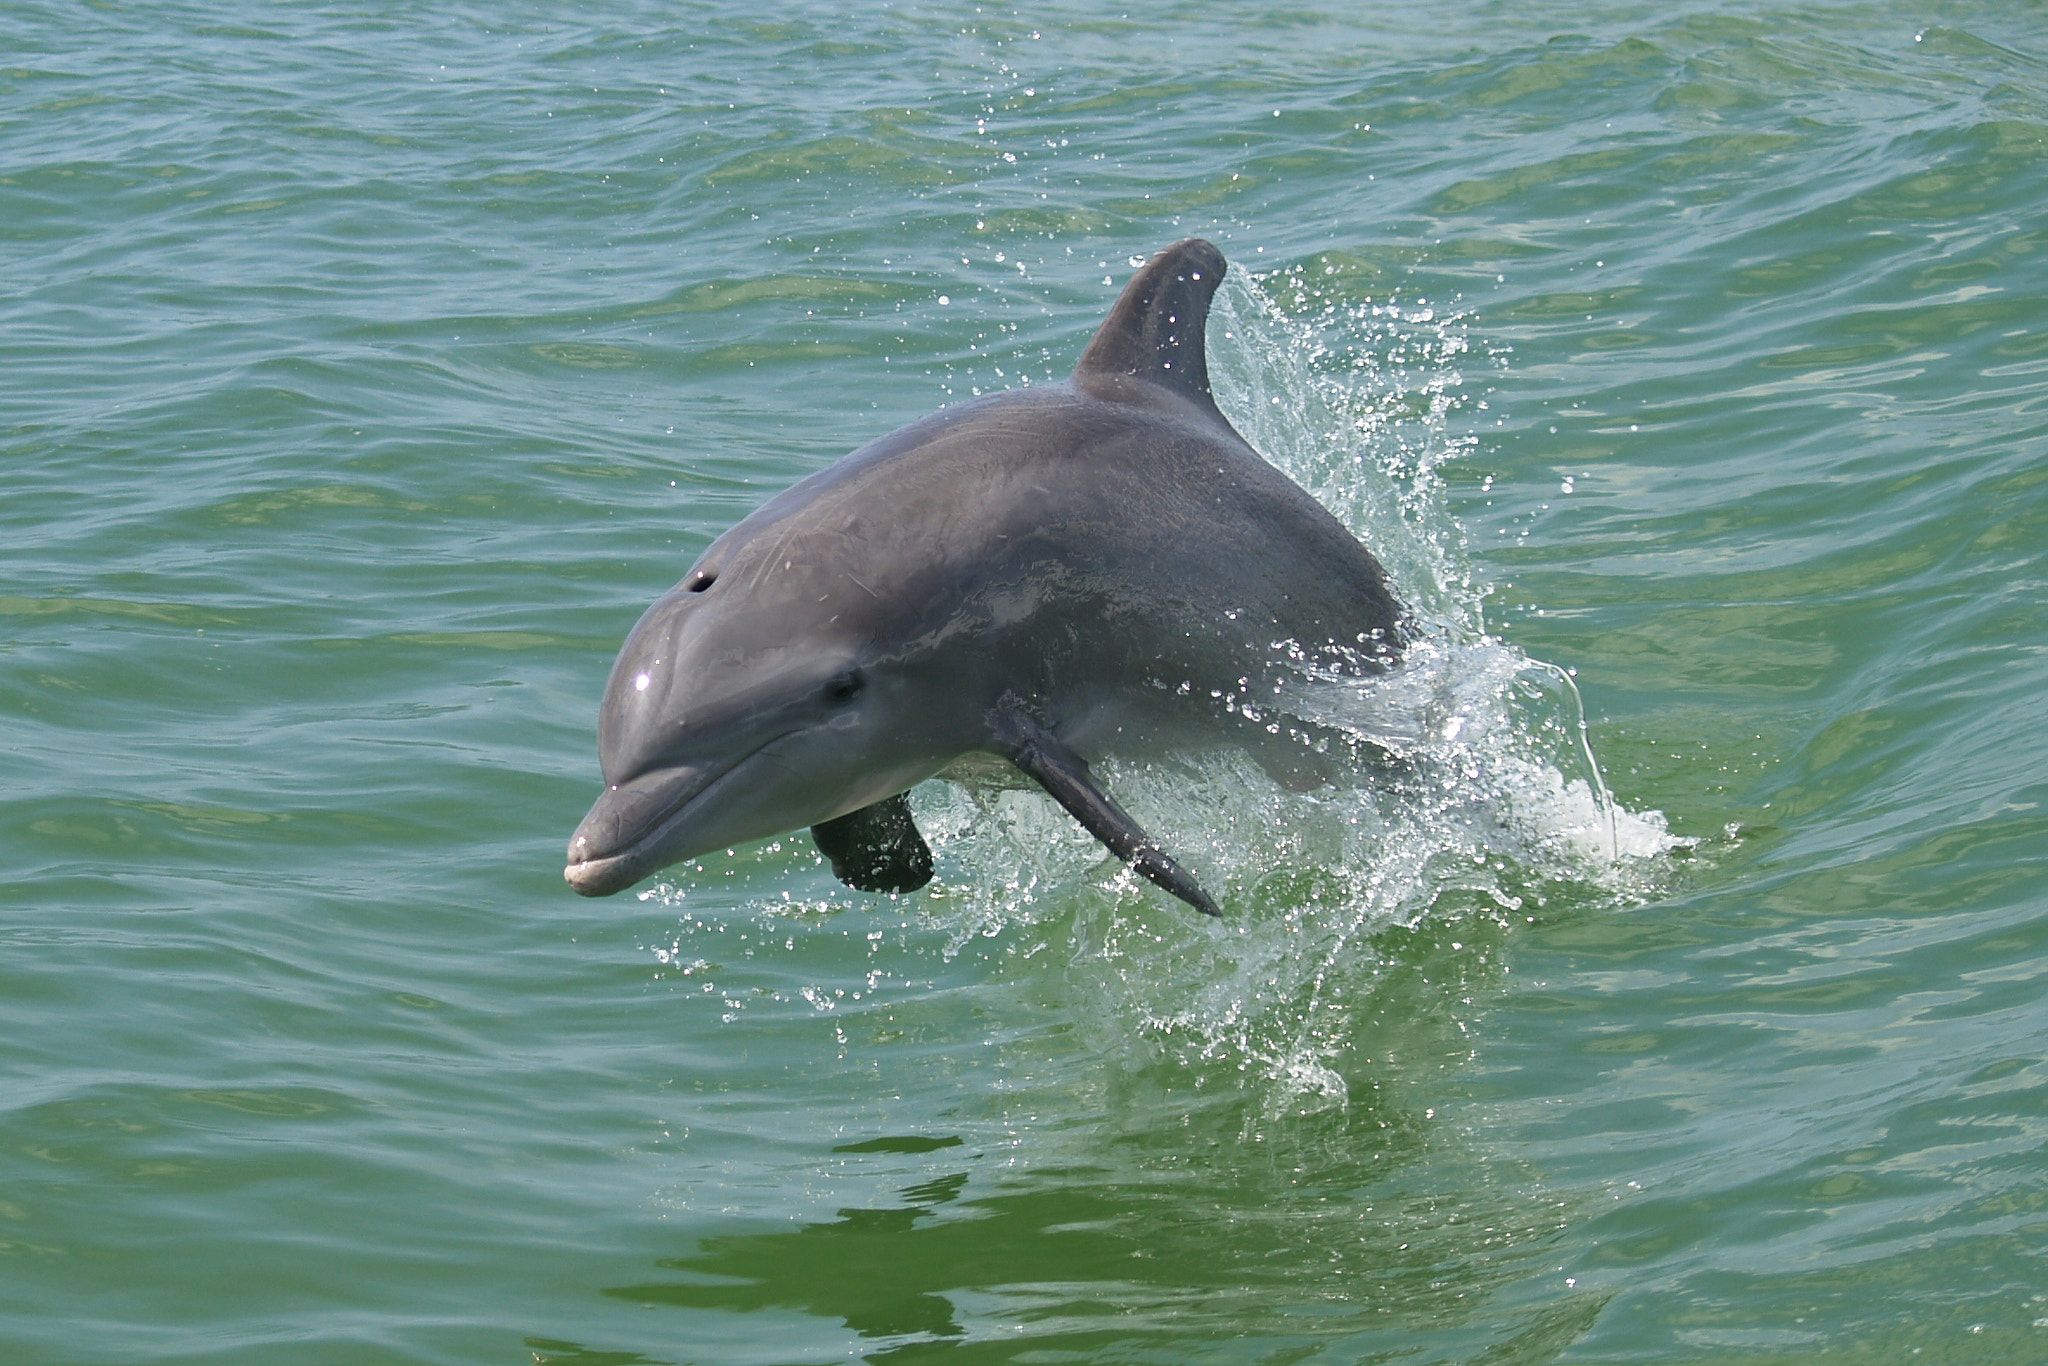 Photograph dolphin by Arjan Quist on 500px